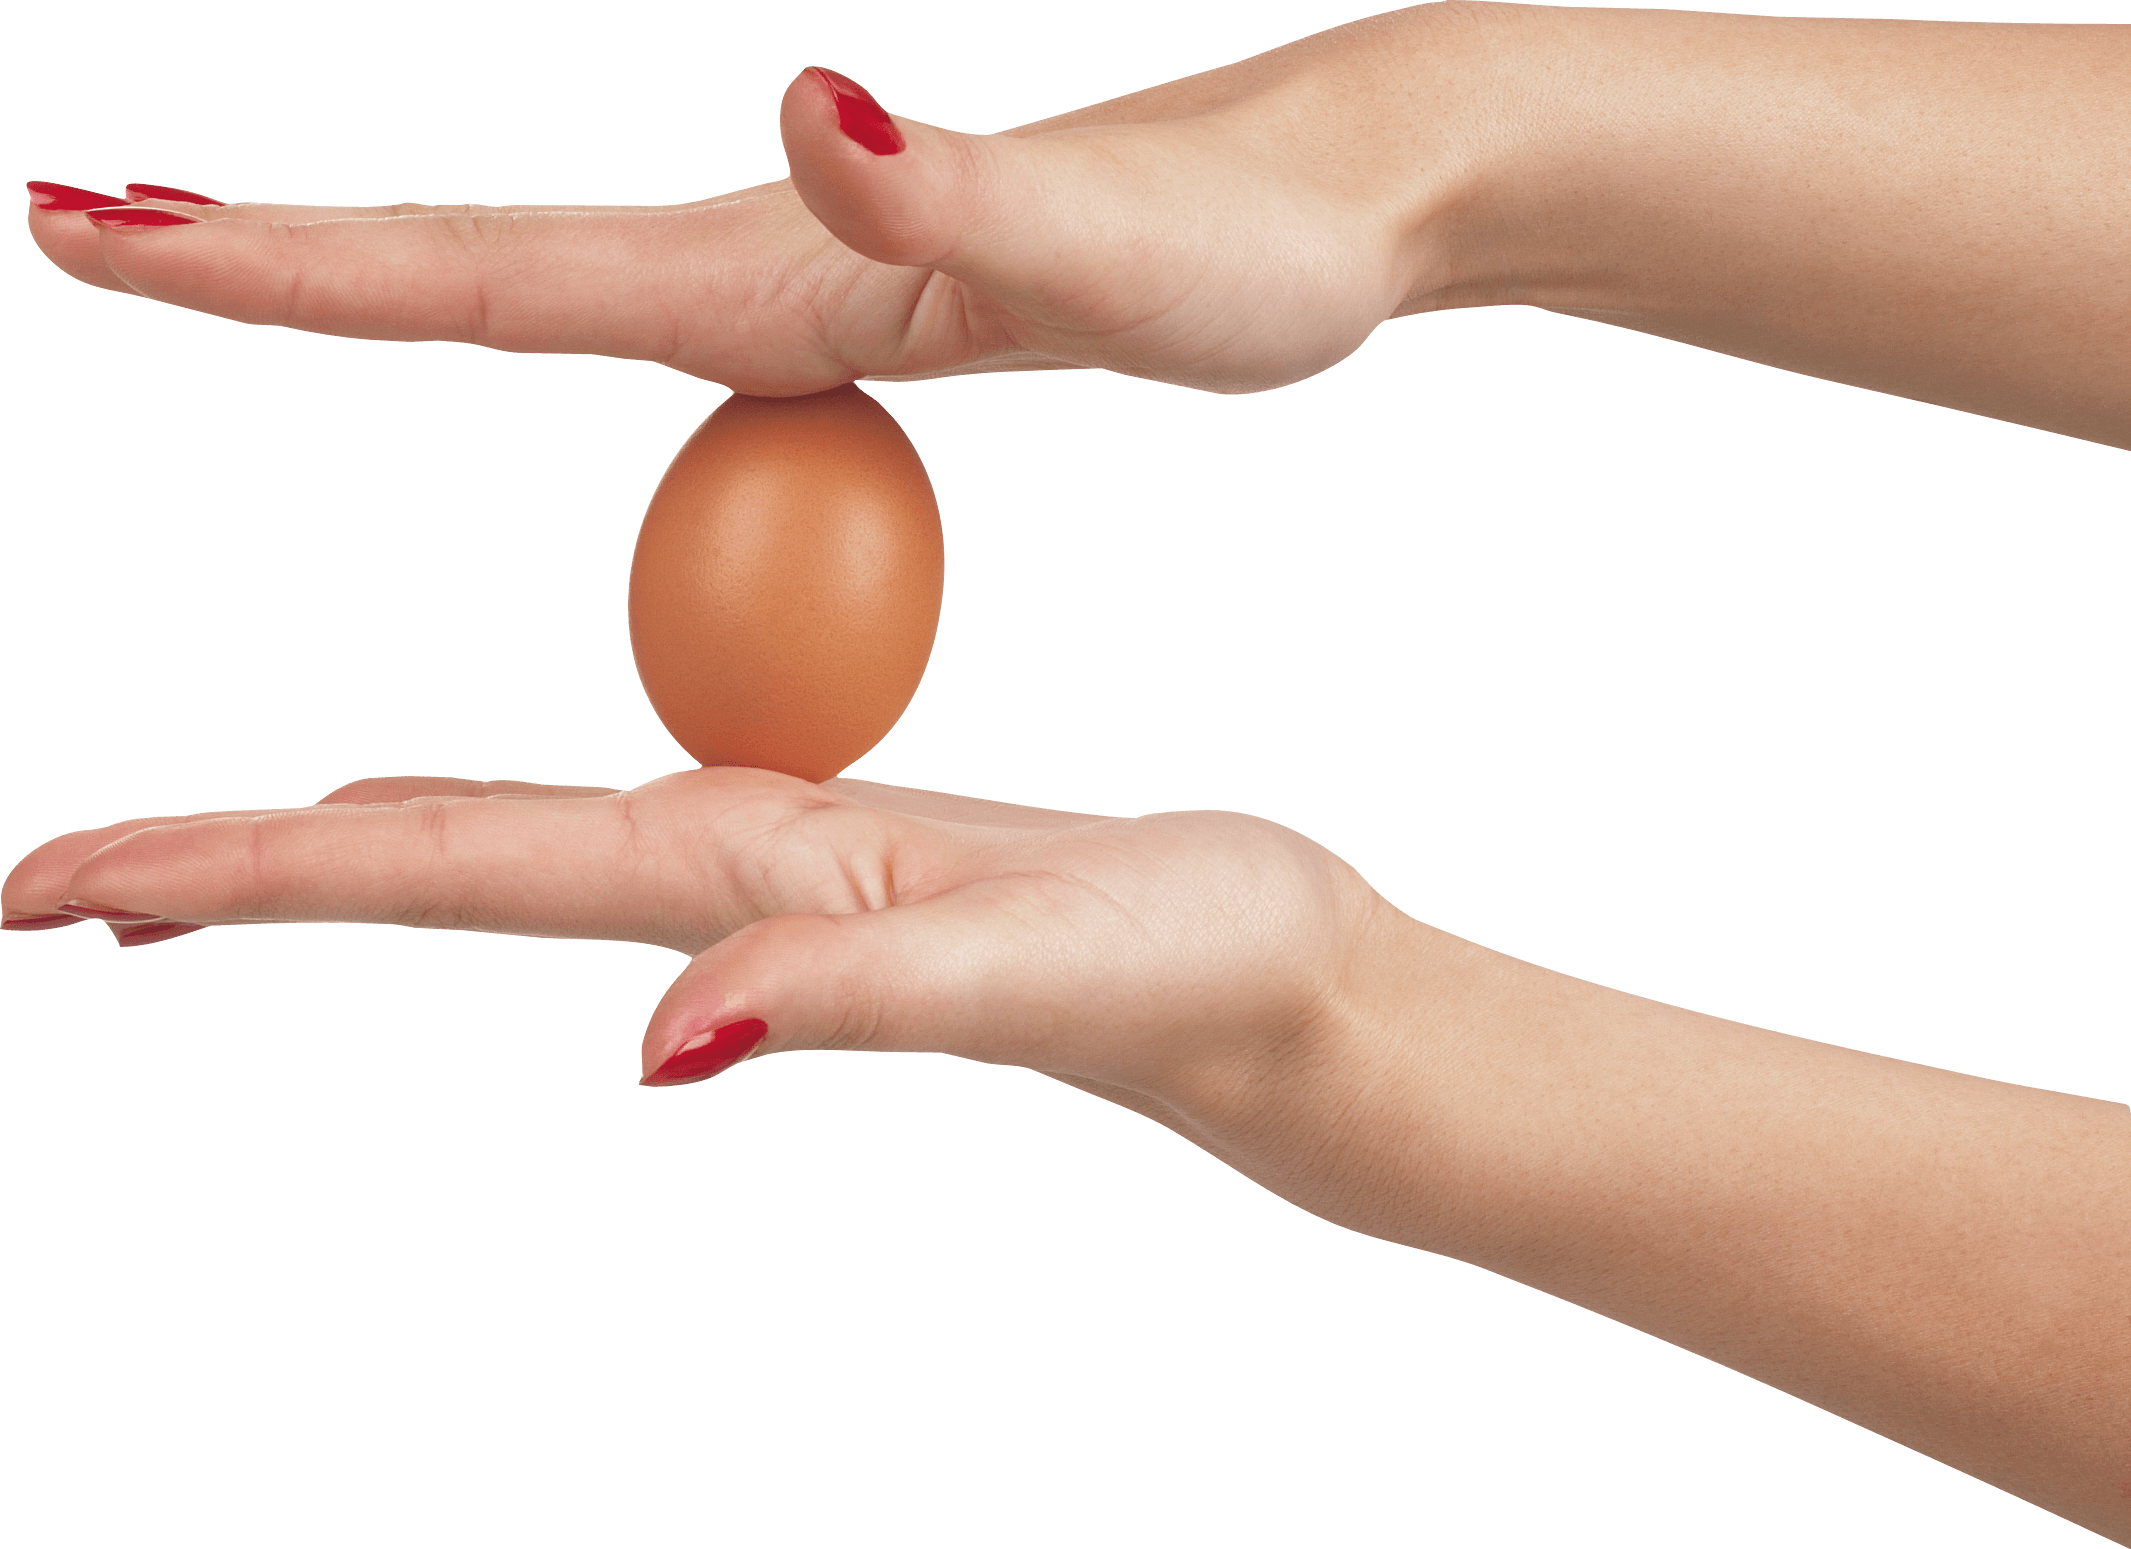 Egg In Hands Png Image PNG Image